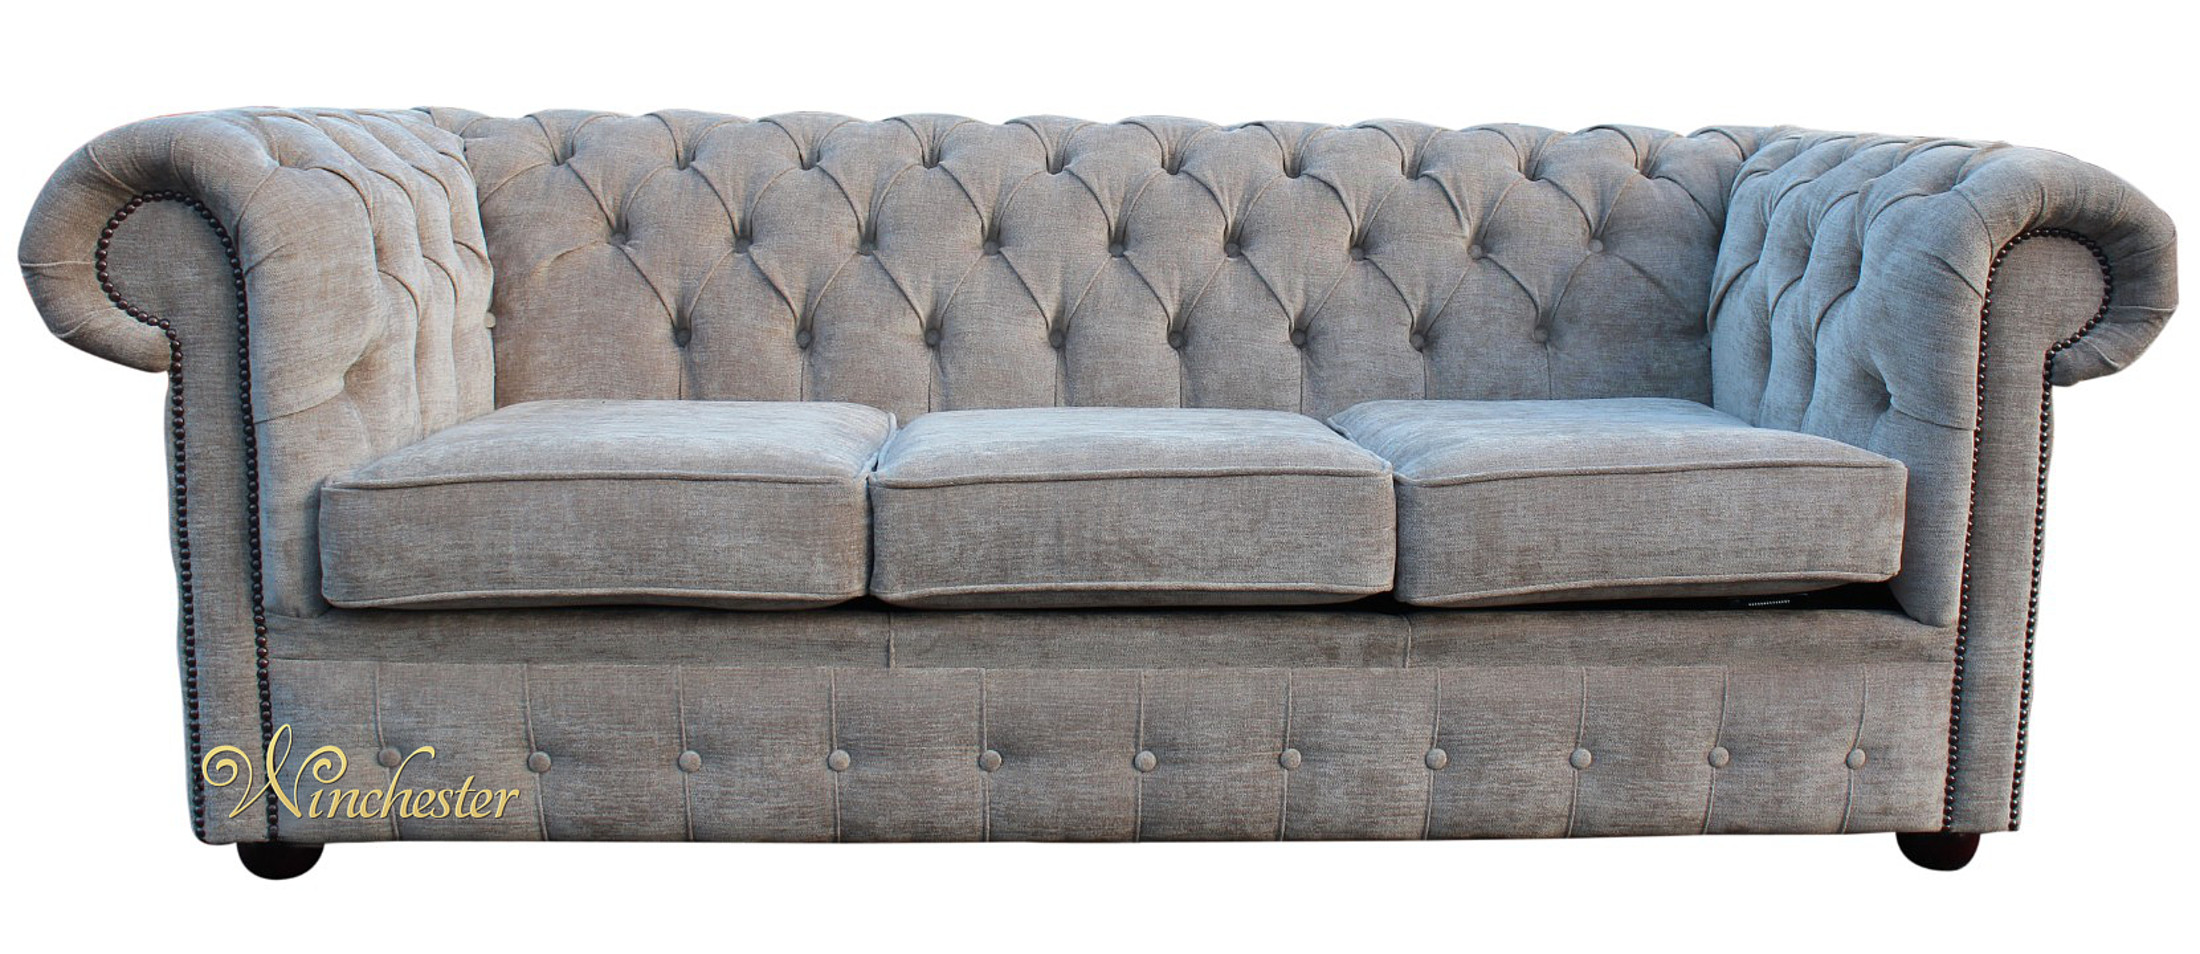 Chesterfield 3 Seater Settee Sofa Bed Ritz Mink Fabric